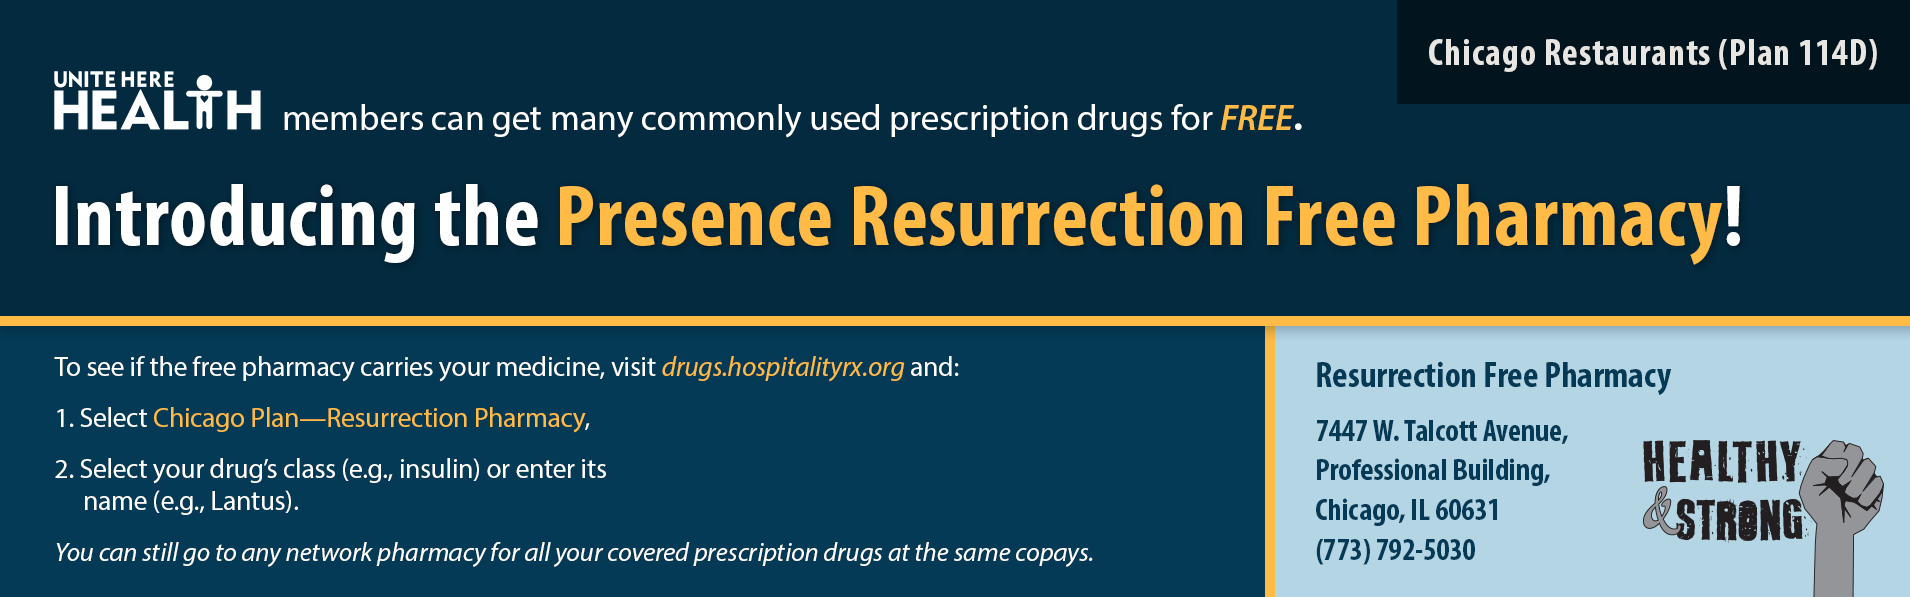 Presence Resurrection Free Pharmacy